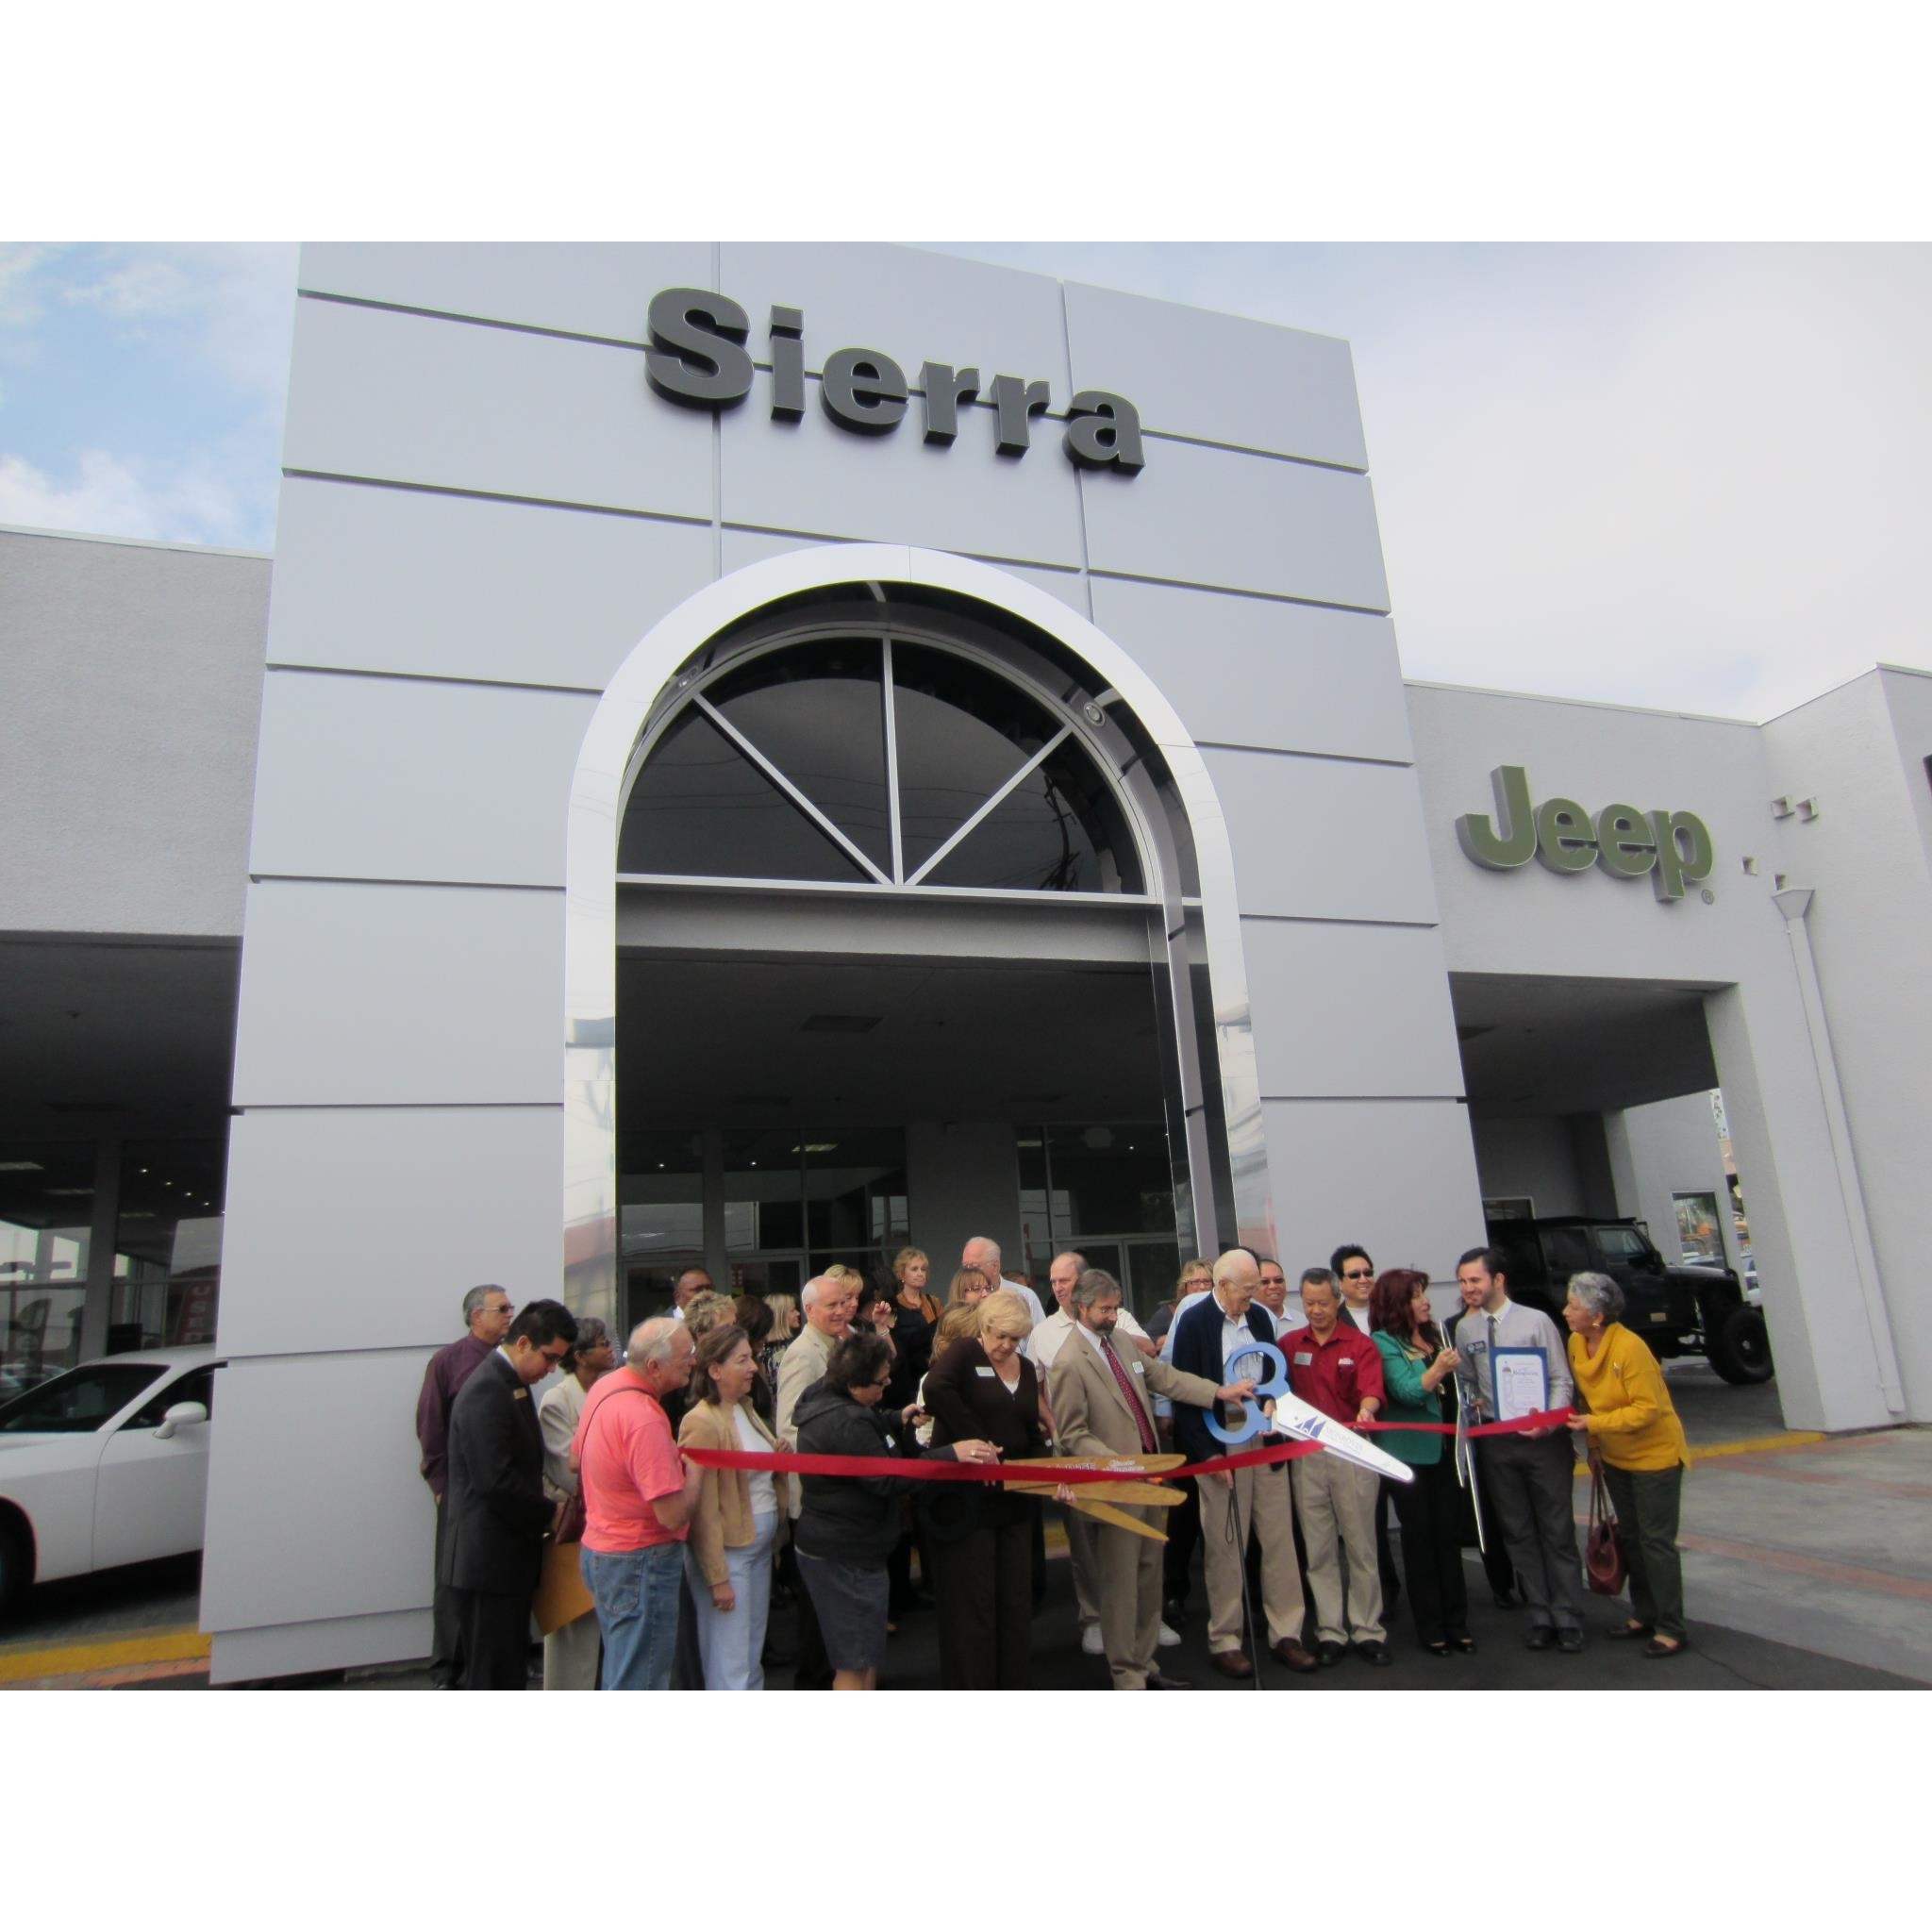 sierra chrysler dodge jeep ram 1305 s mountain ave monrovia ca auto dealers mapquest. Black Bedroom Furniture Sets. Home Design Ideas